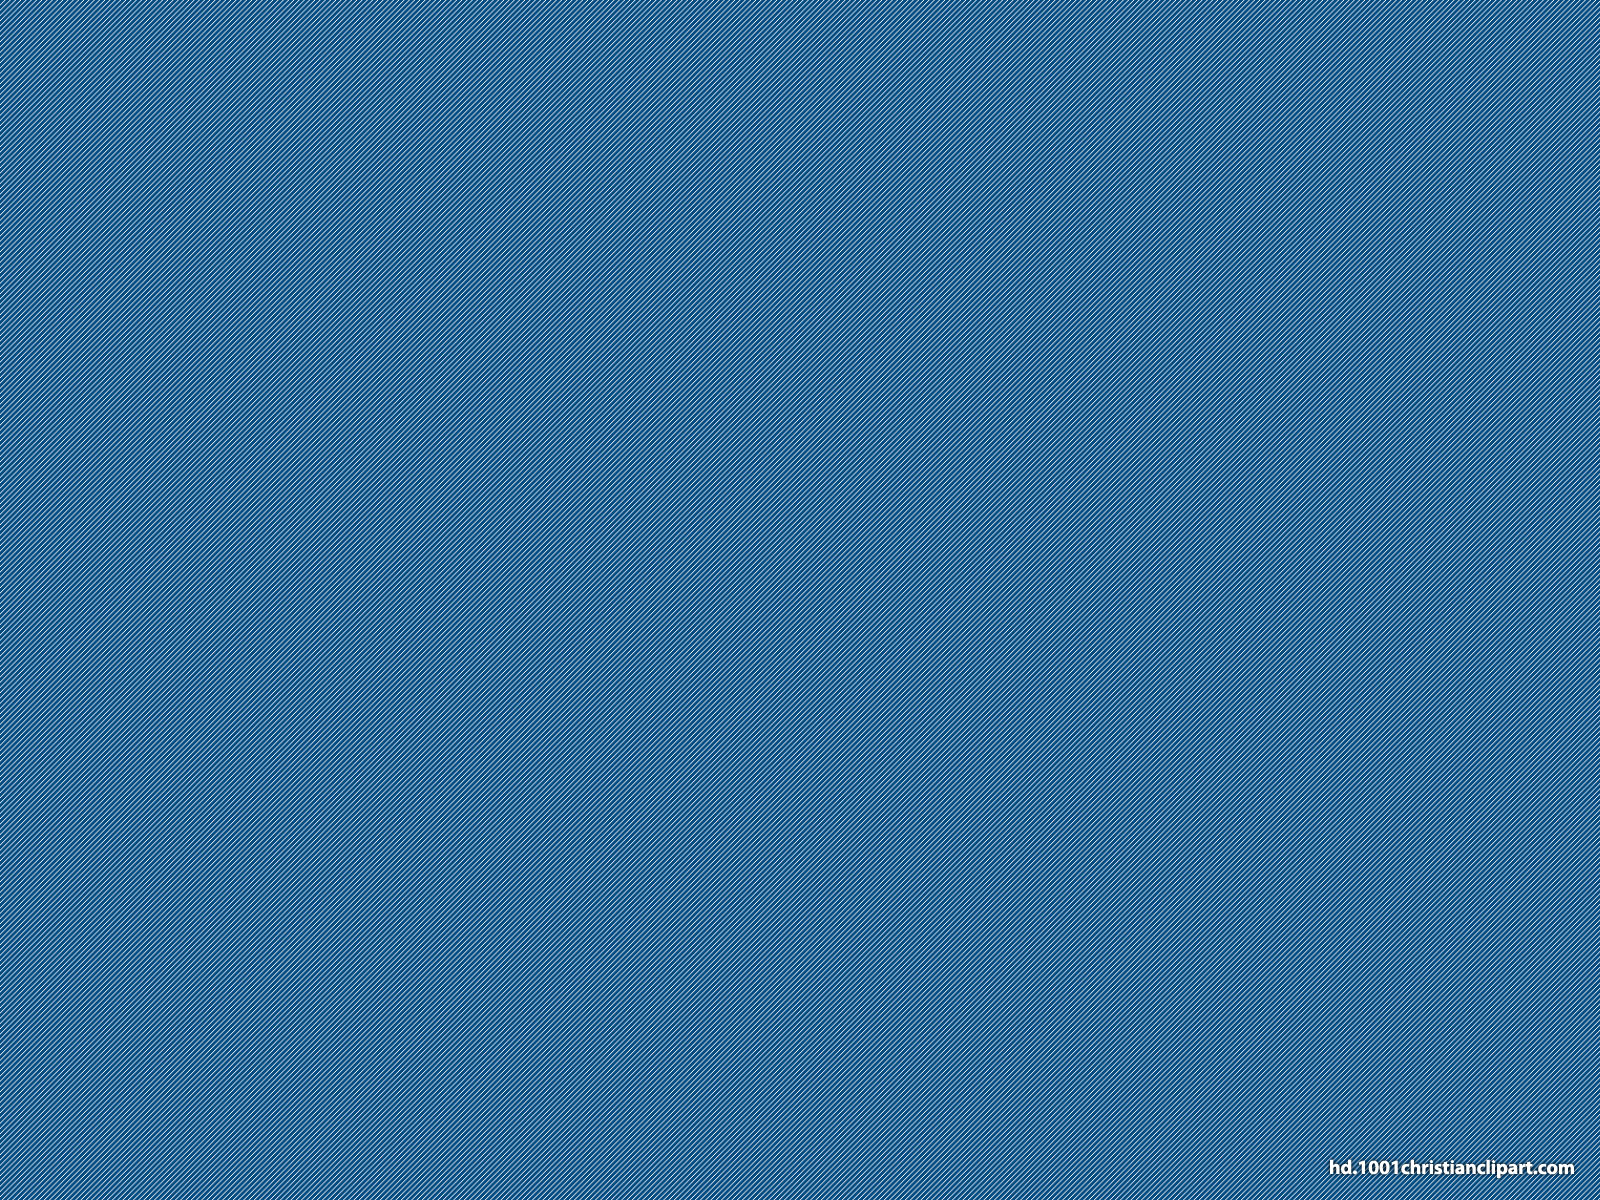 minimal blue background